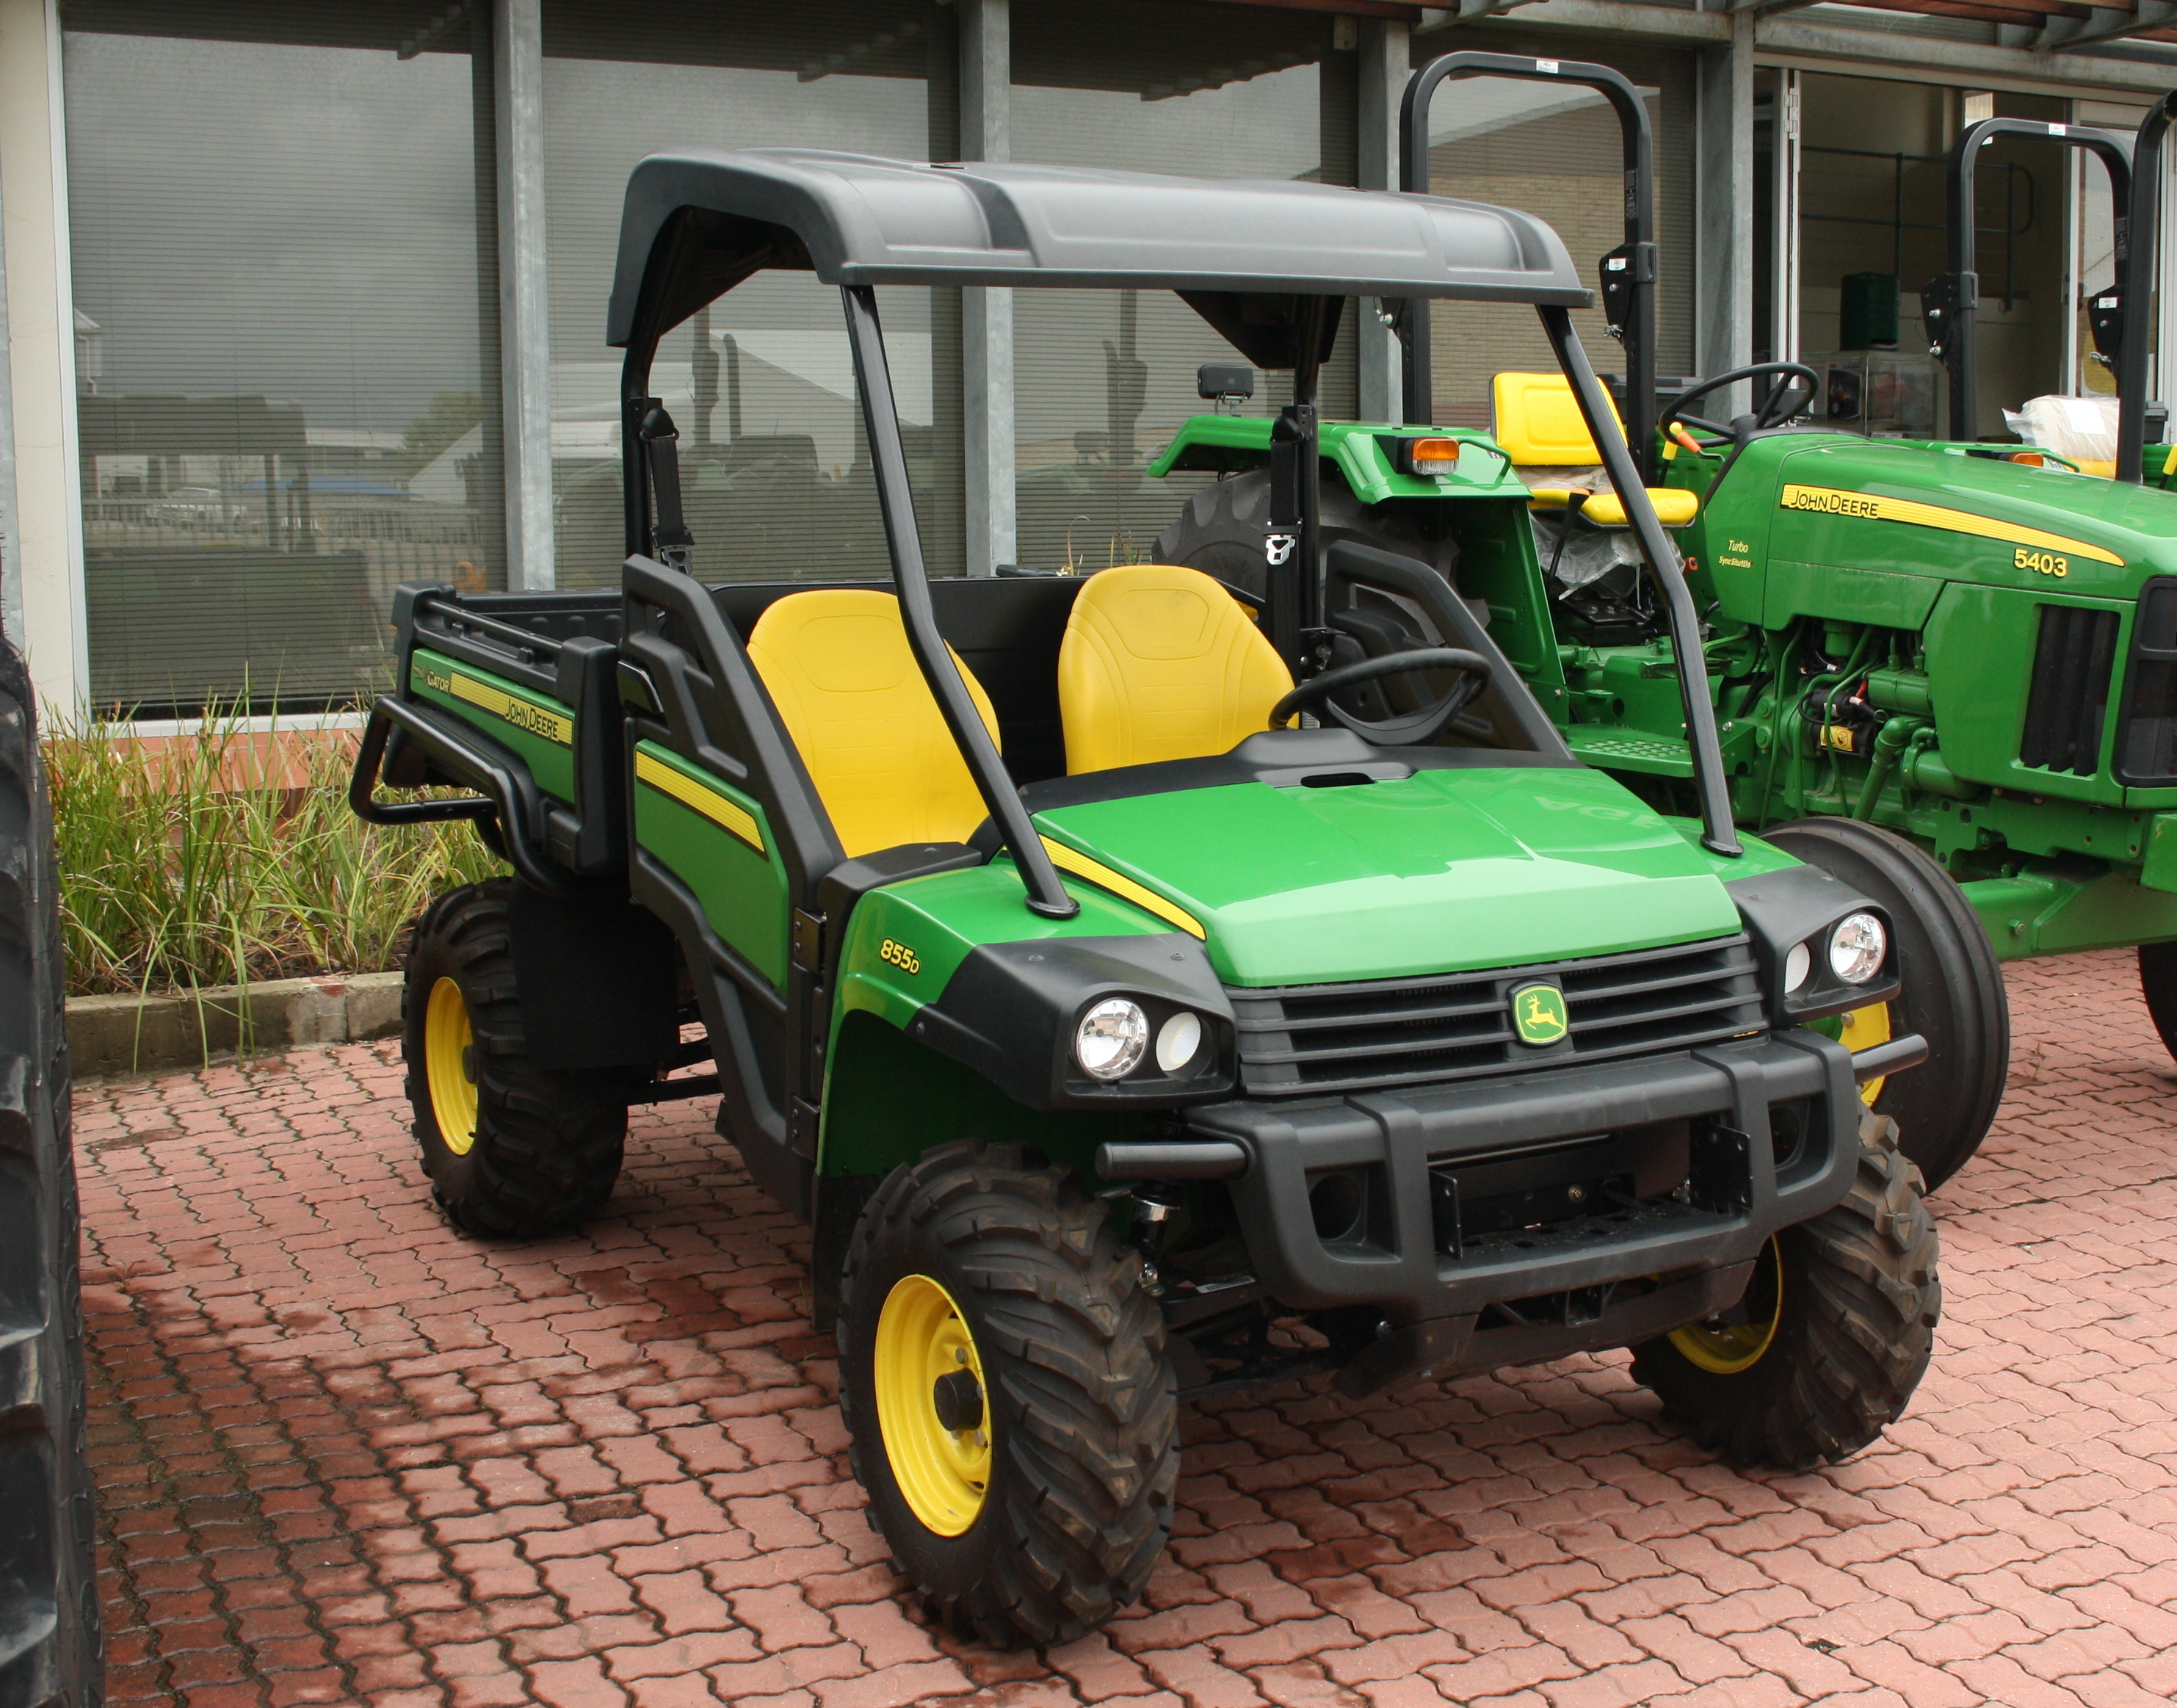 file john deere gator 855d 16380637112 jpg wikimedia. Black Bedroom Furniture Sets. Home Design Ideas